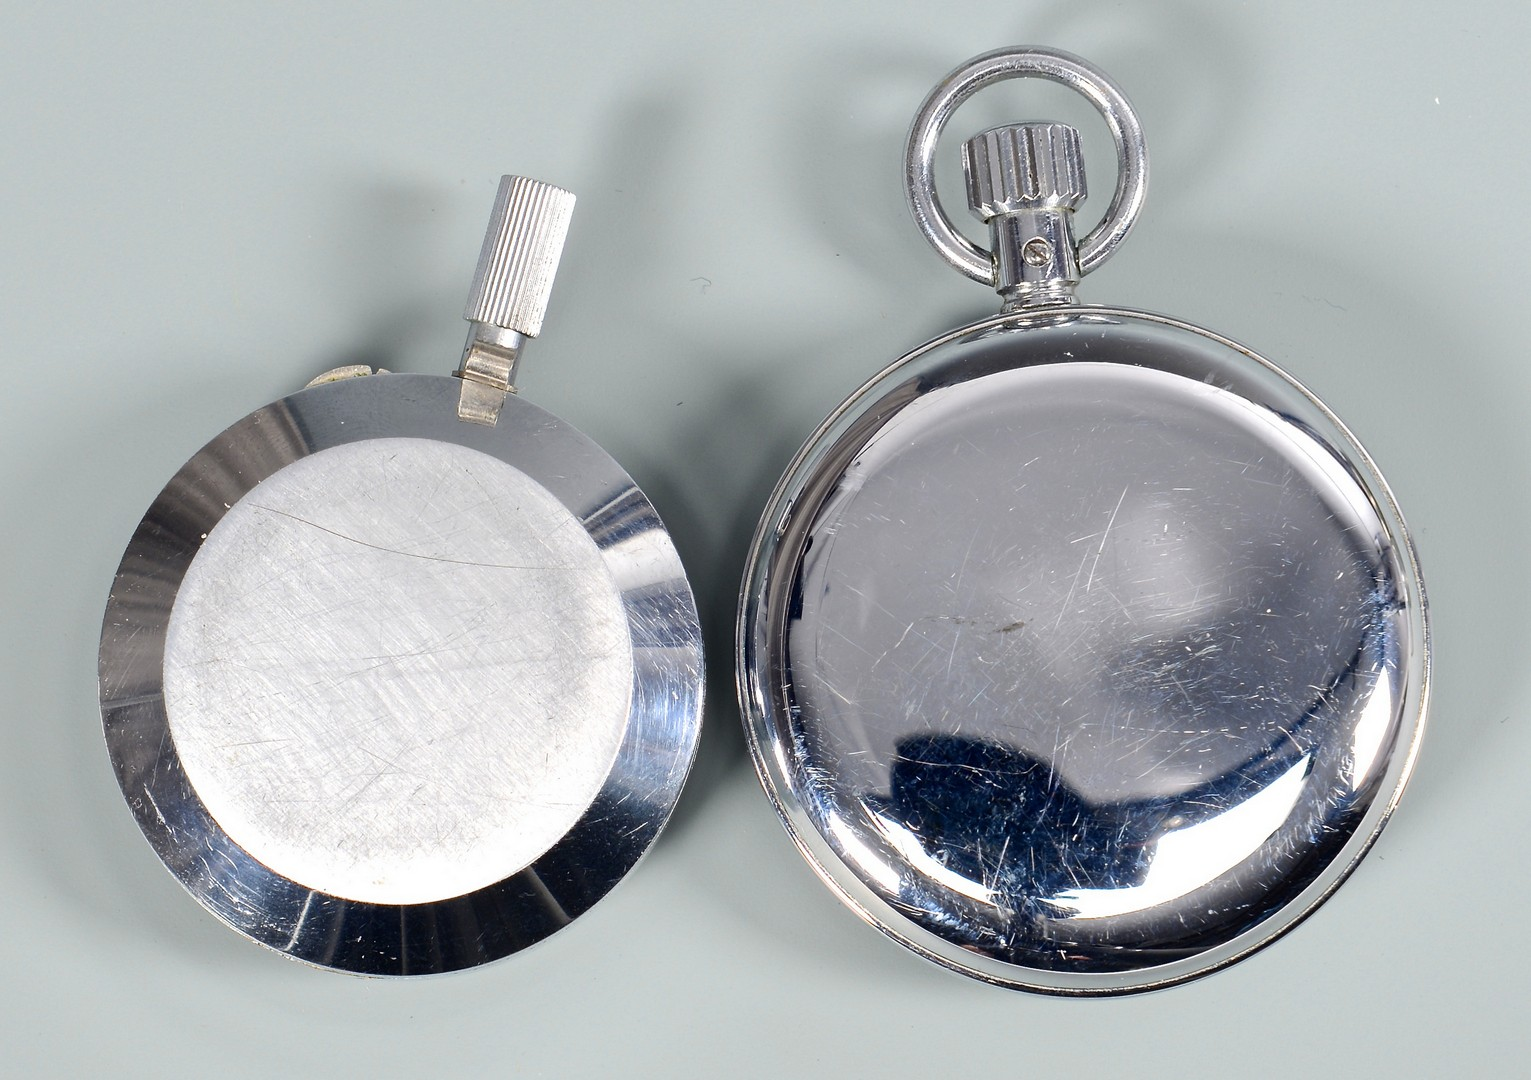 Lot 614: 6 Pocket Measuring Devices